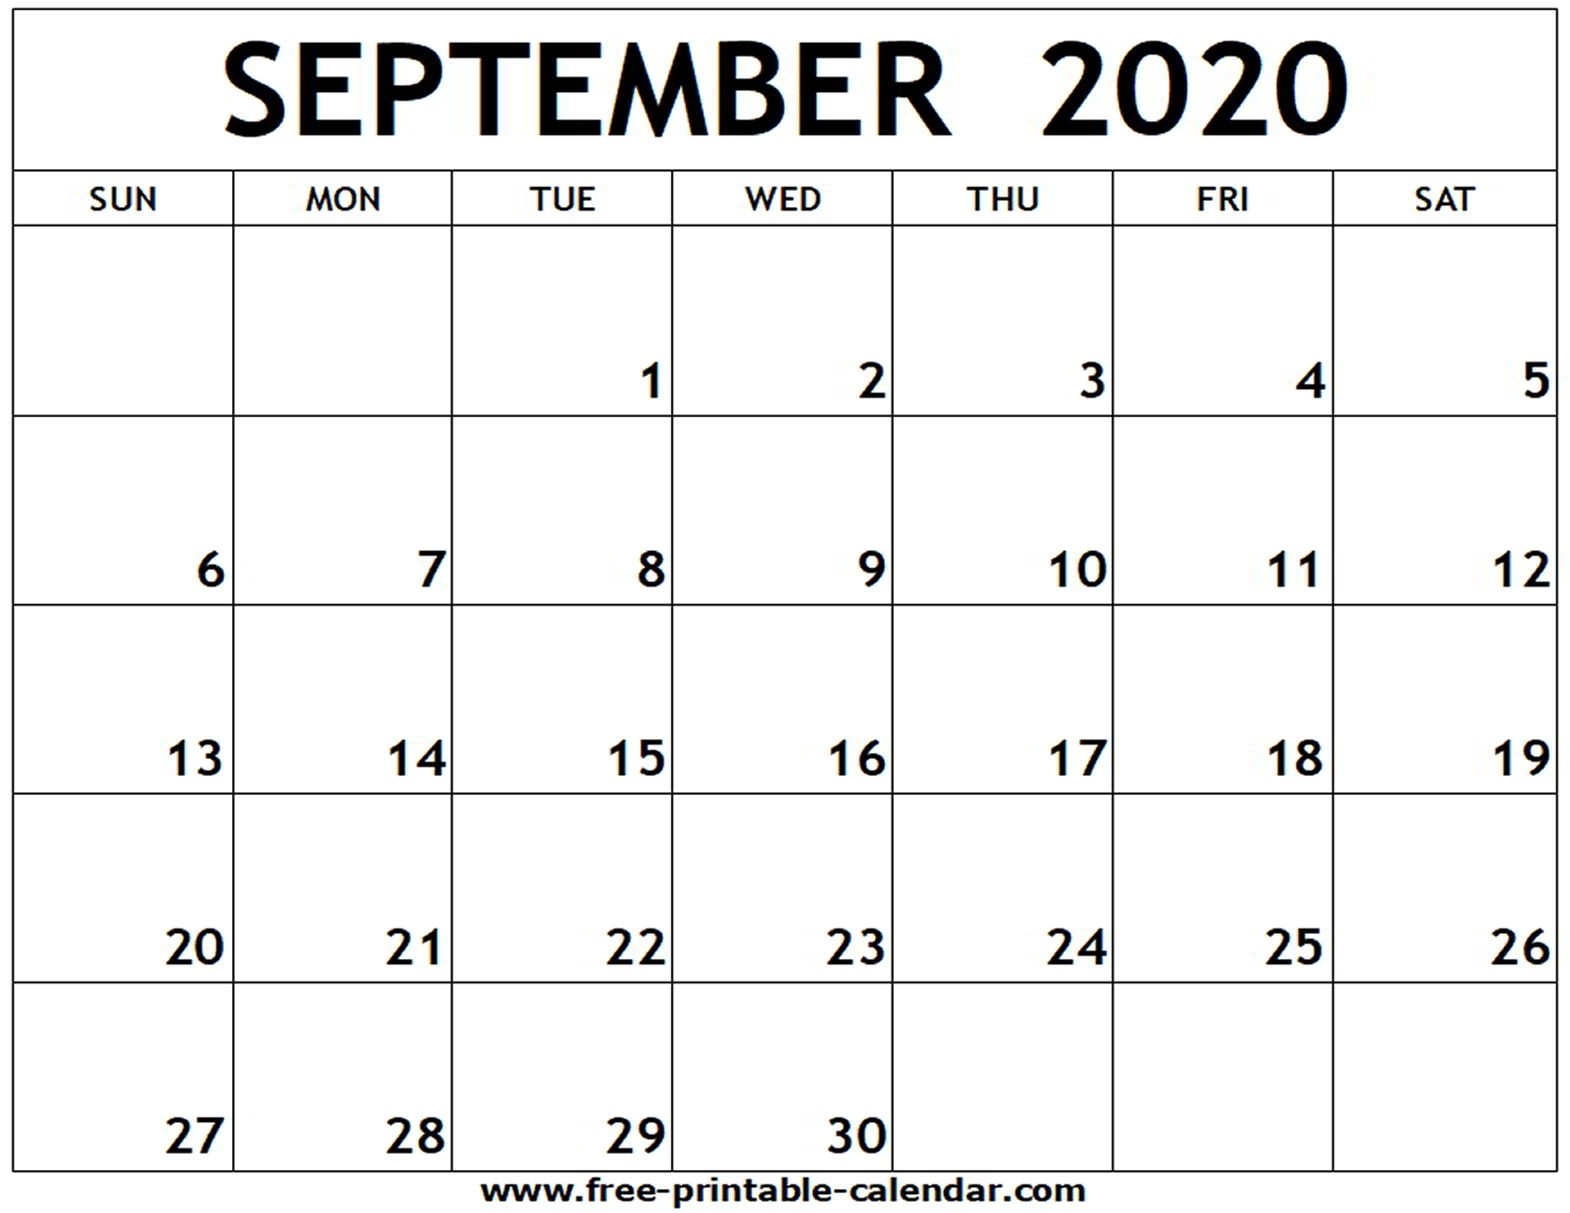 September 2020 Printable Calendar - Free-Printable-Calendar  2020 Calendar September To November